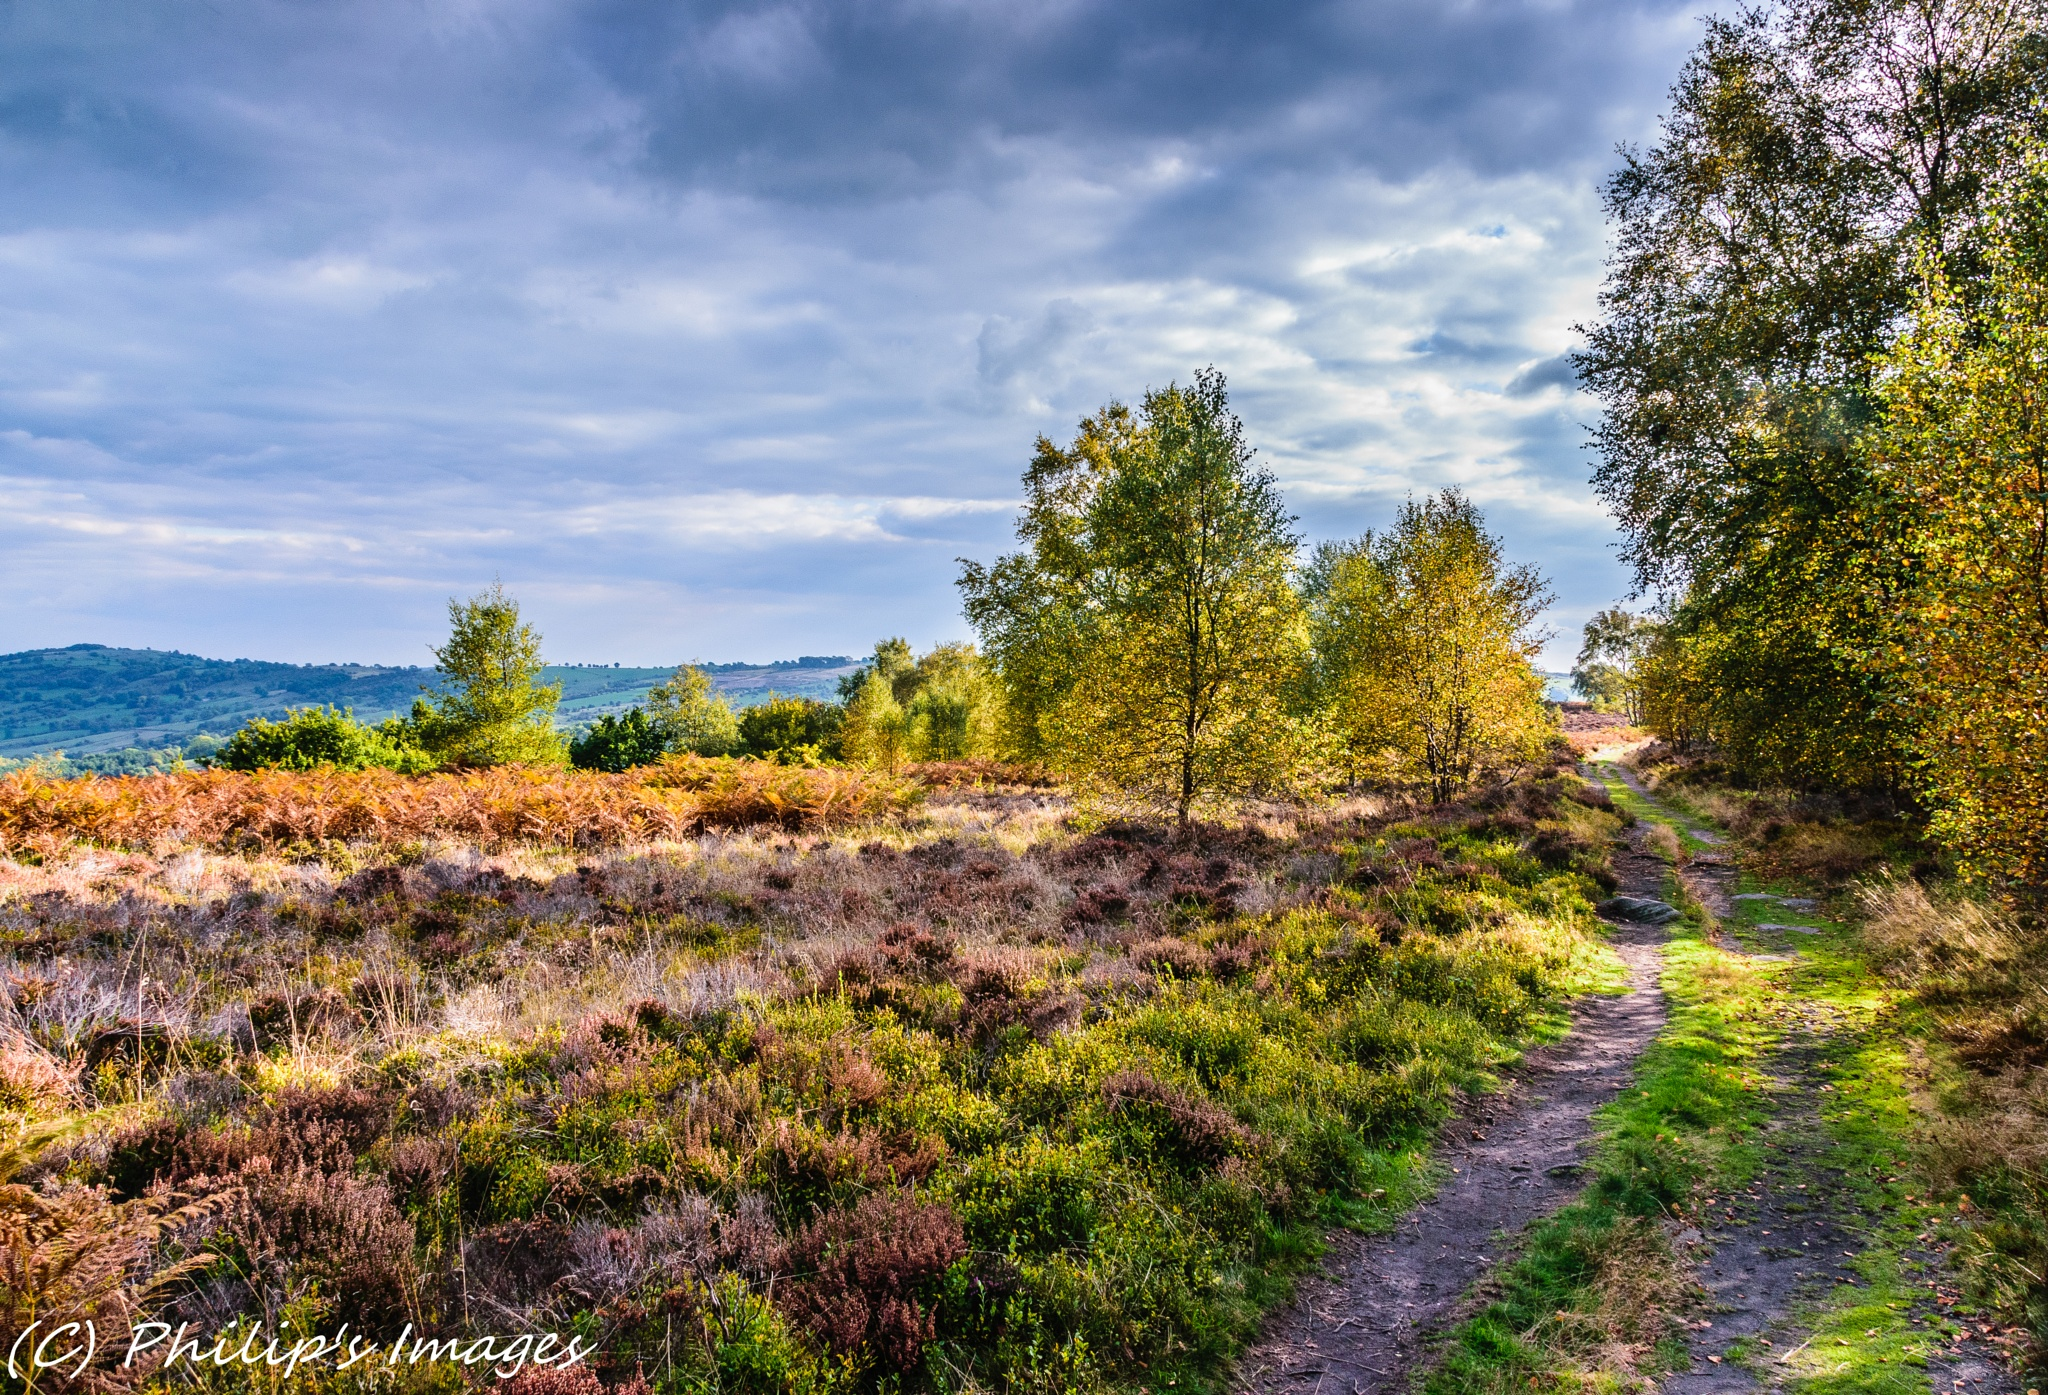 Stanton Moor by philips images